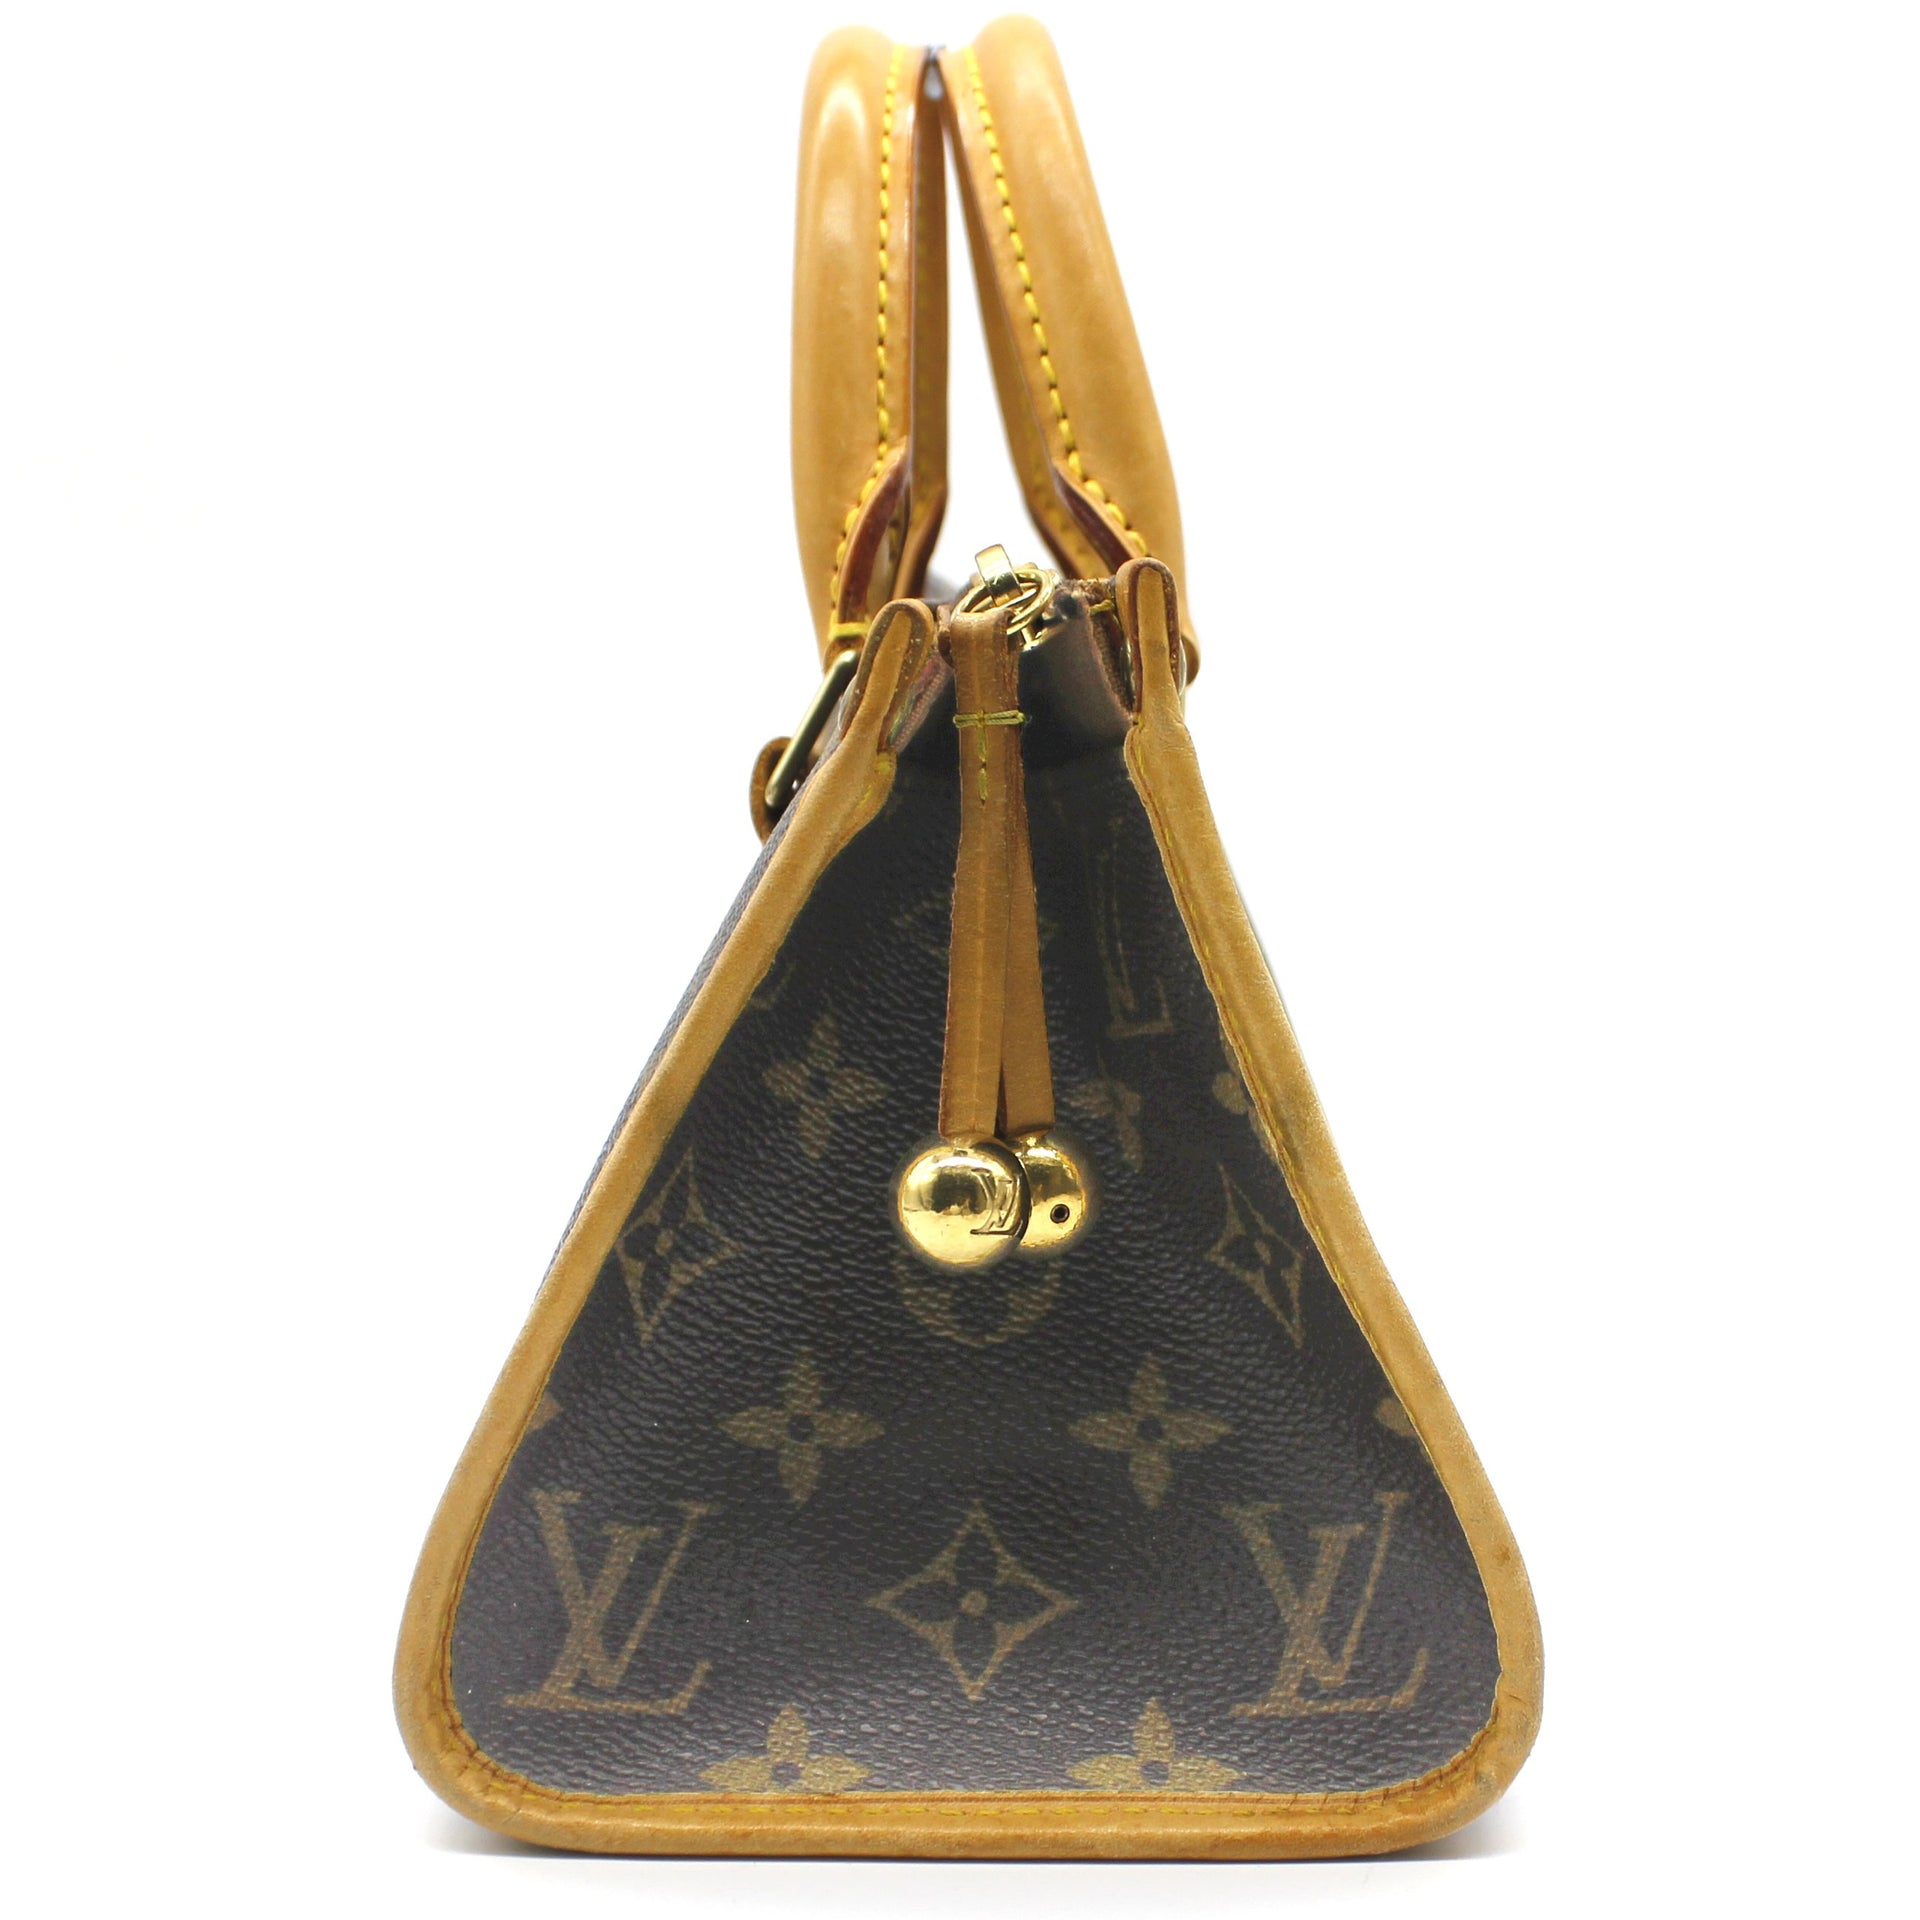 Vintage Popincourt Monogram Small Bag